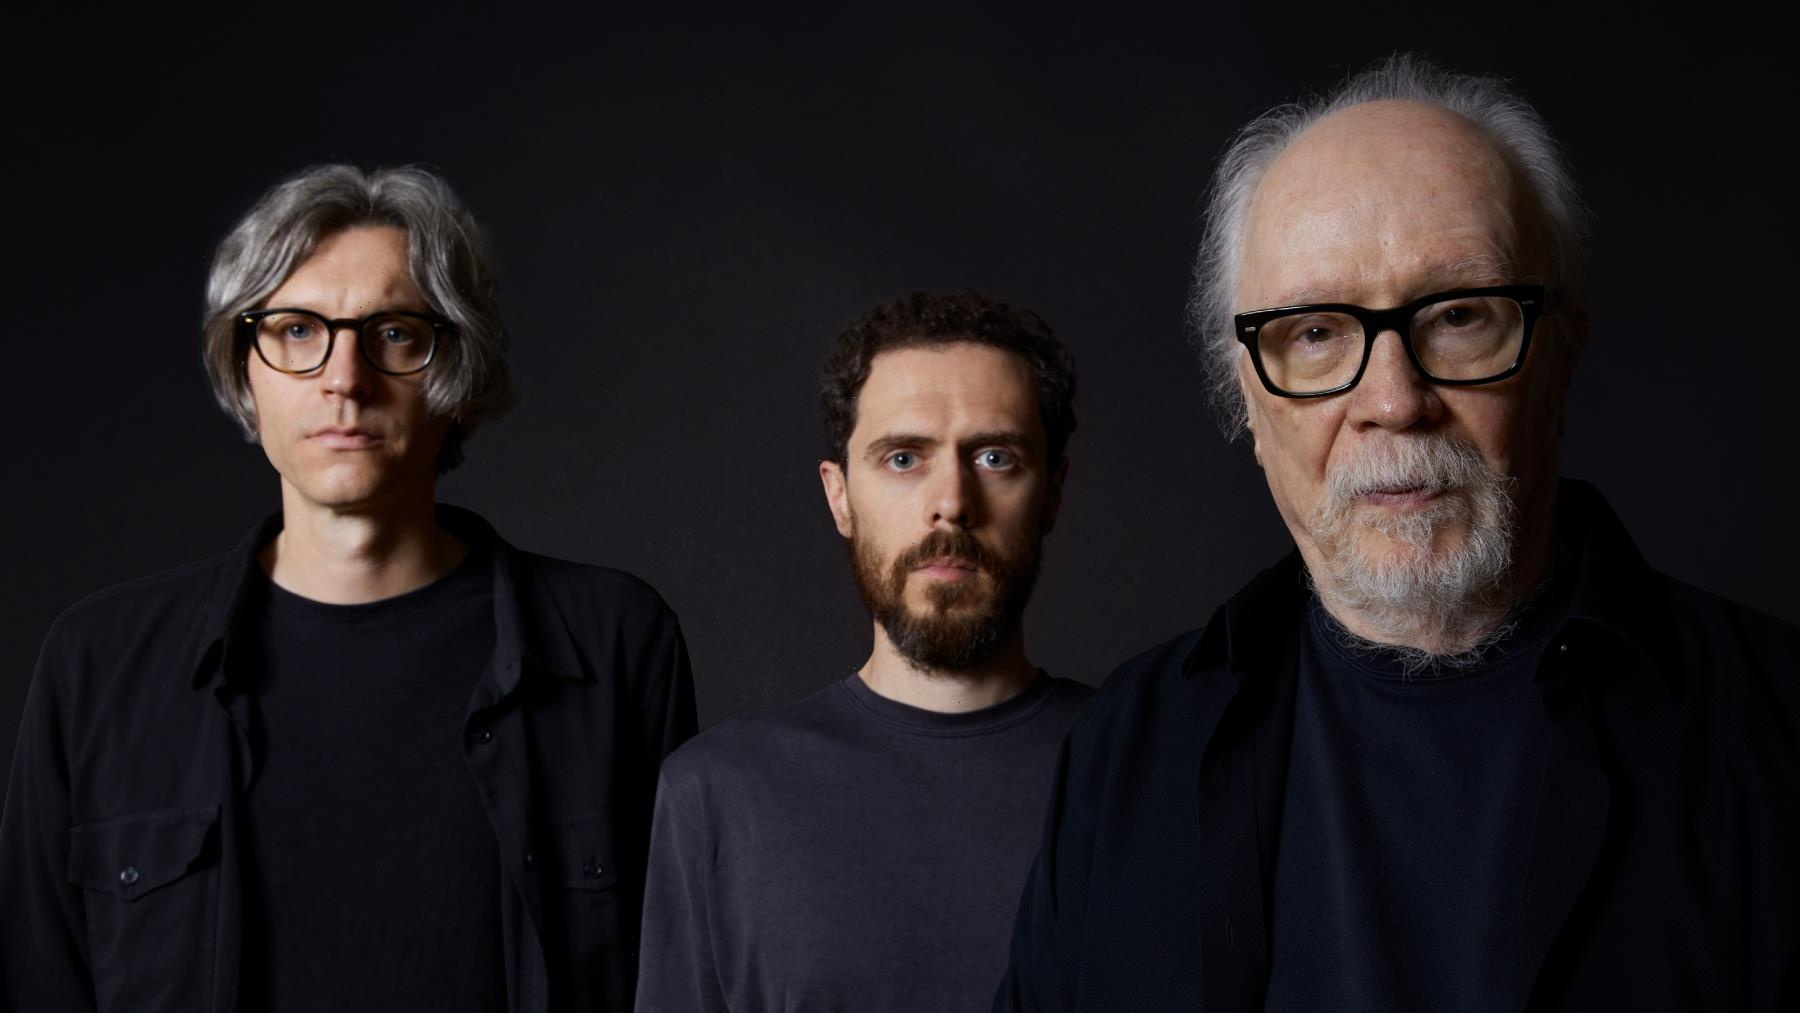 John Carpenter Previews New 'Halloween Kills' Soundtrack With Sinister 'Unkillable'